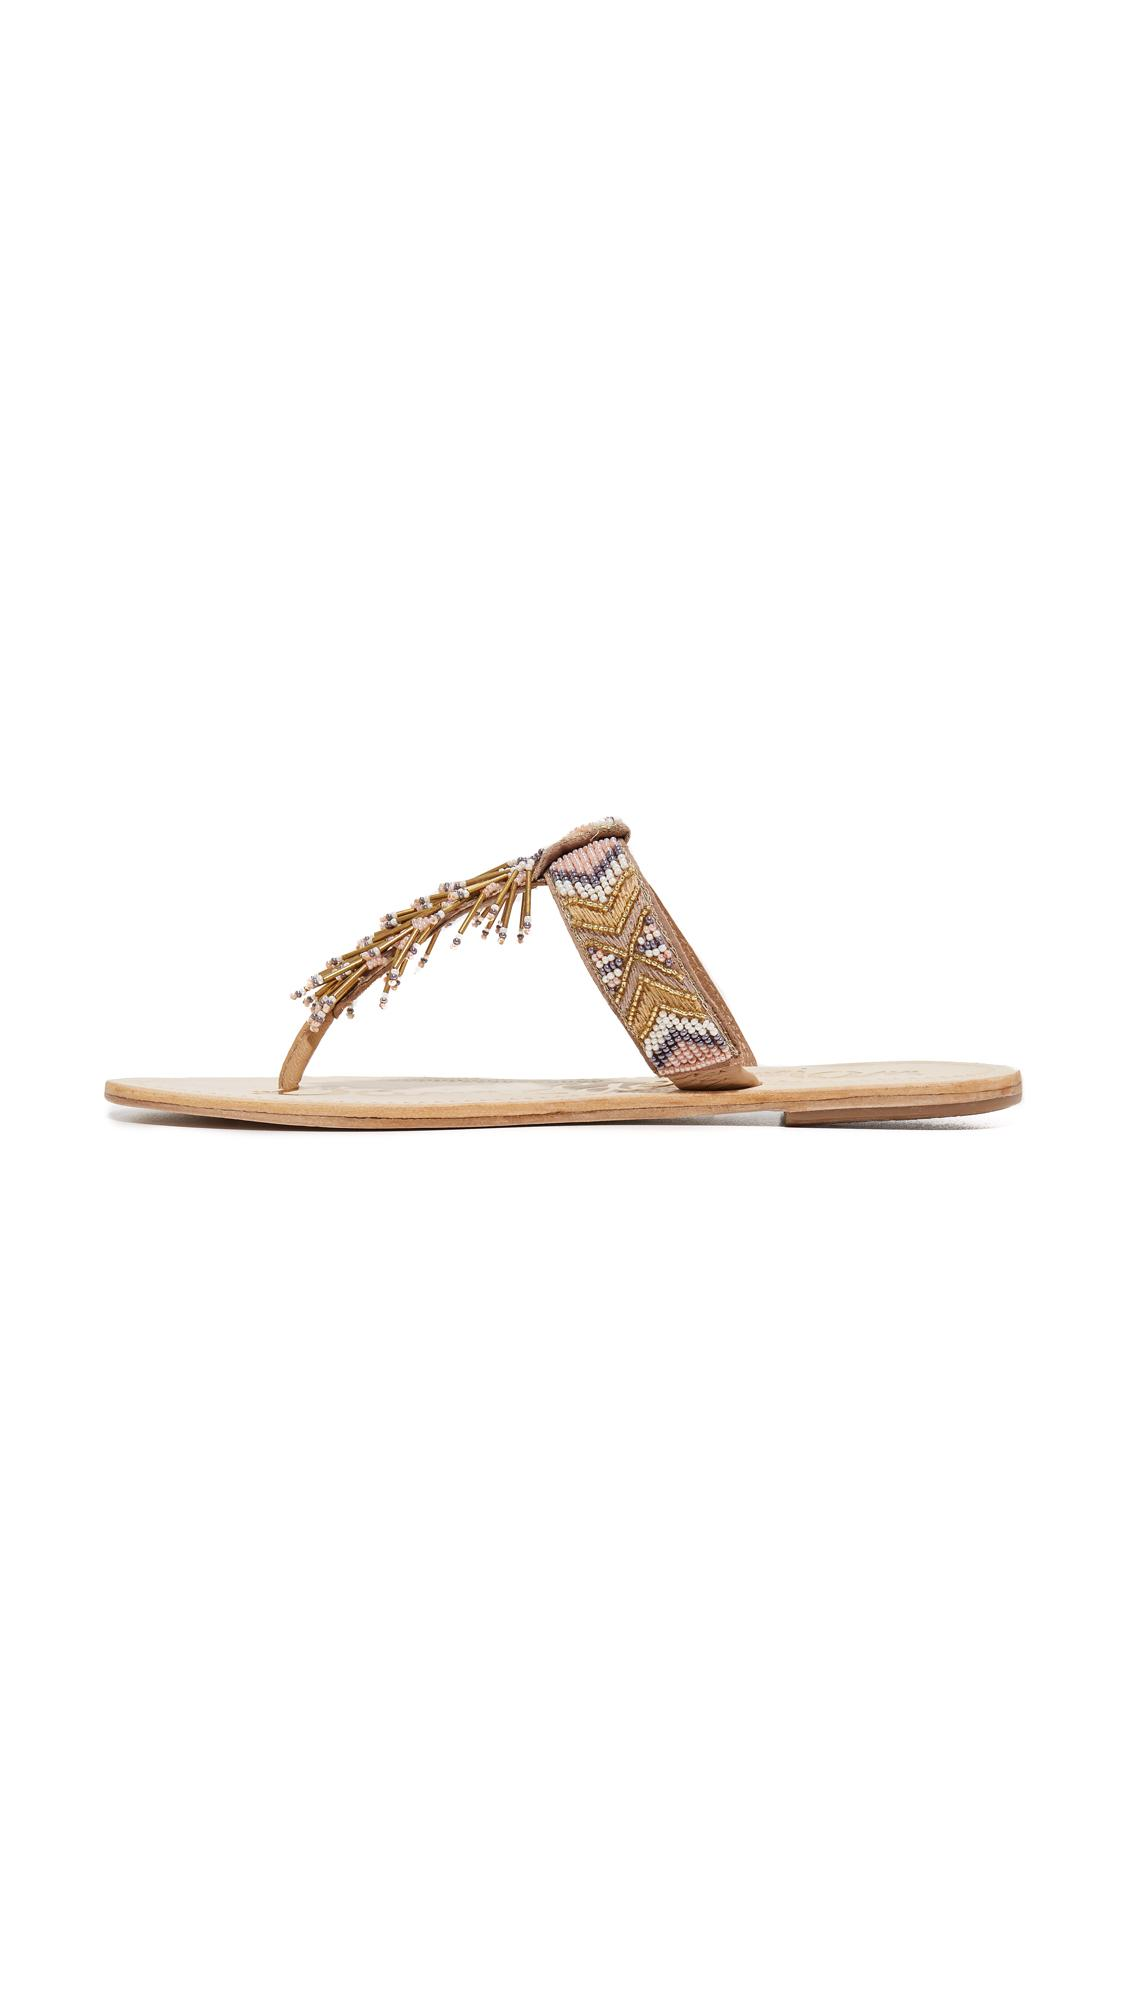 5d7b53ea4d1d7d Lyst - Sam Edelman Anella Beaded Sandals